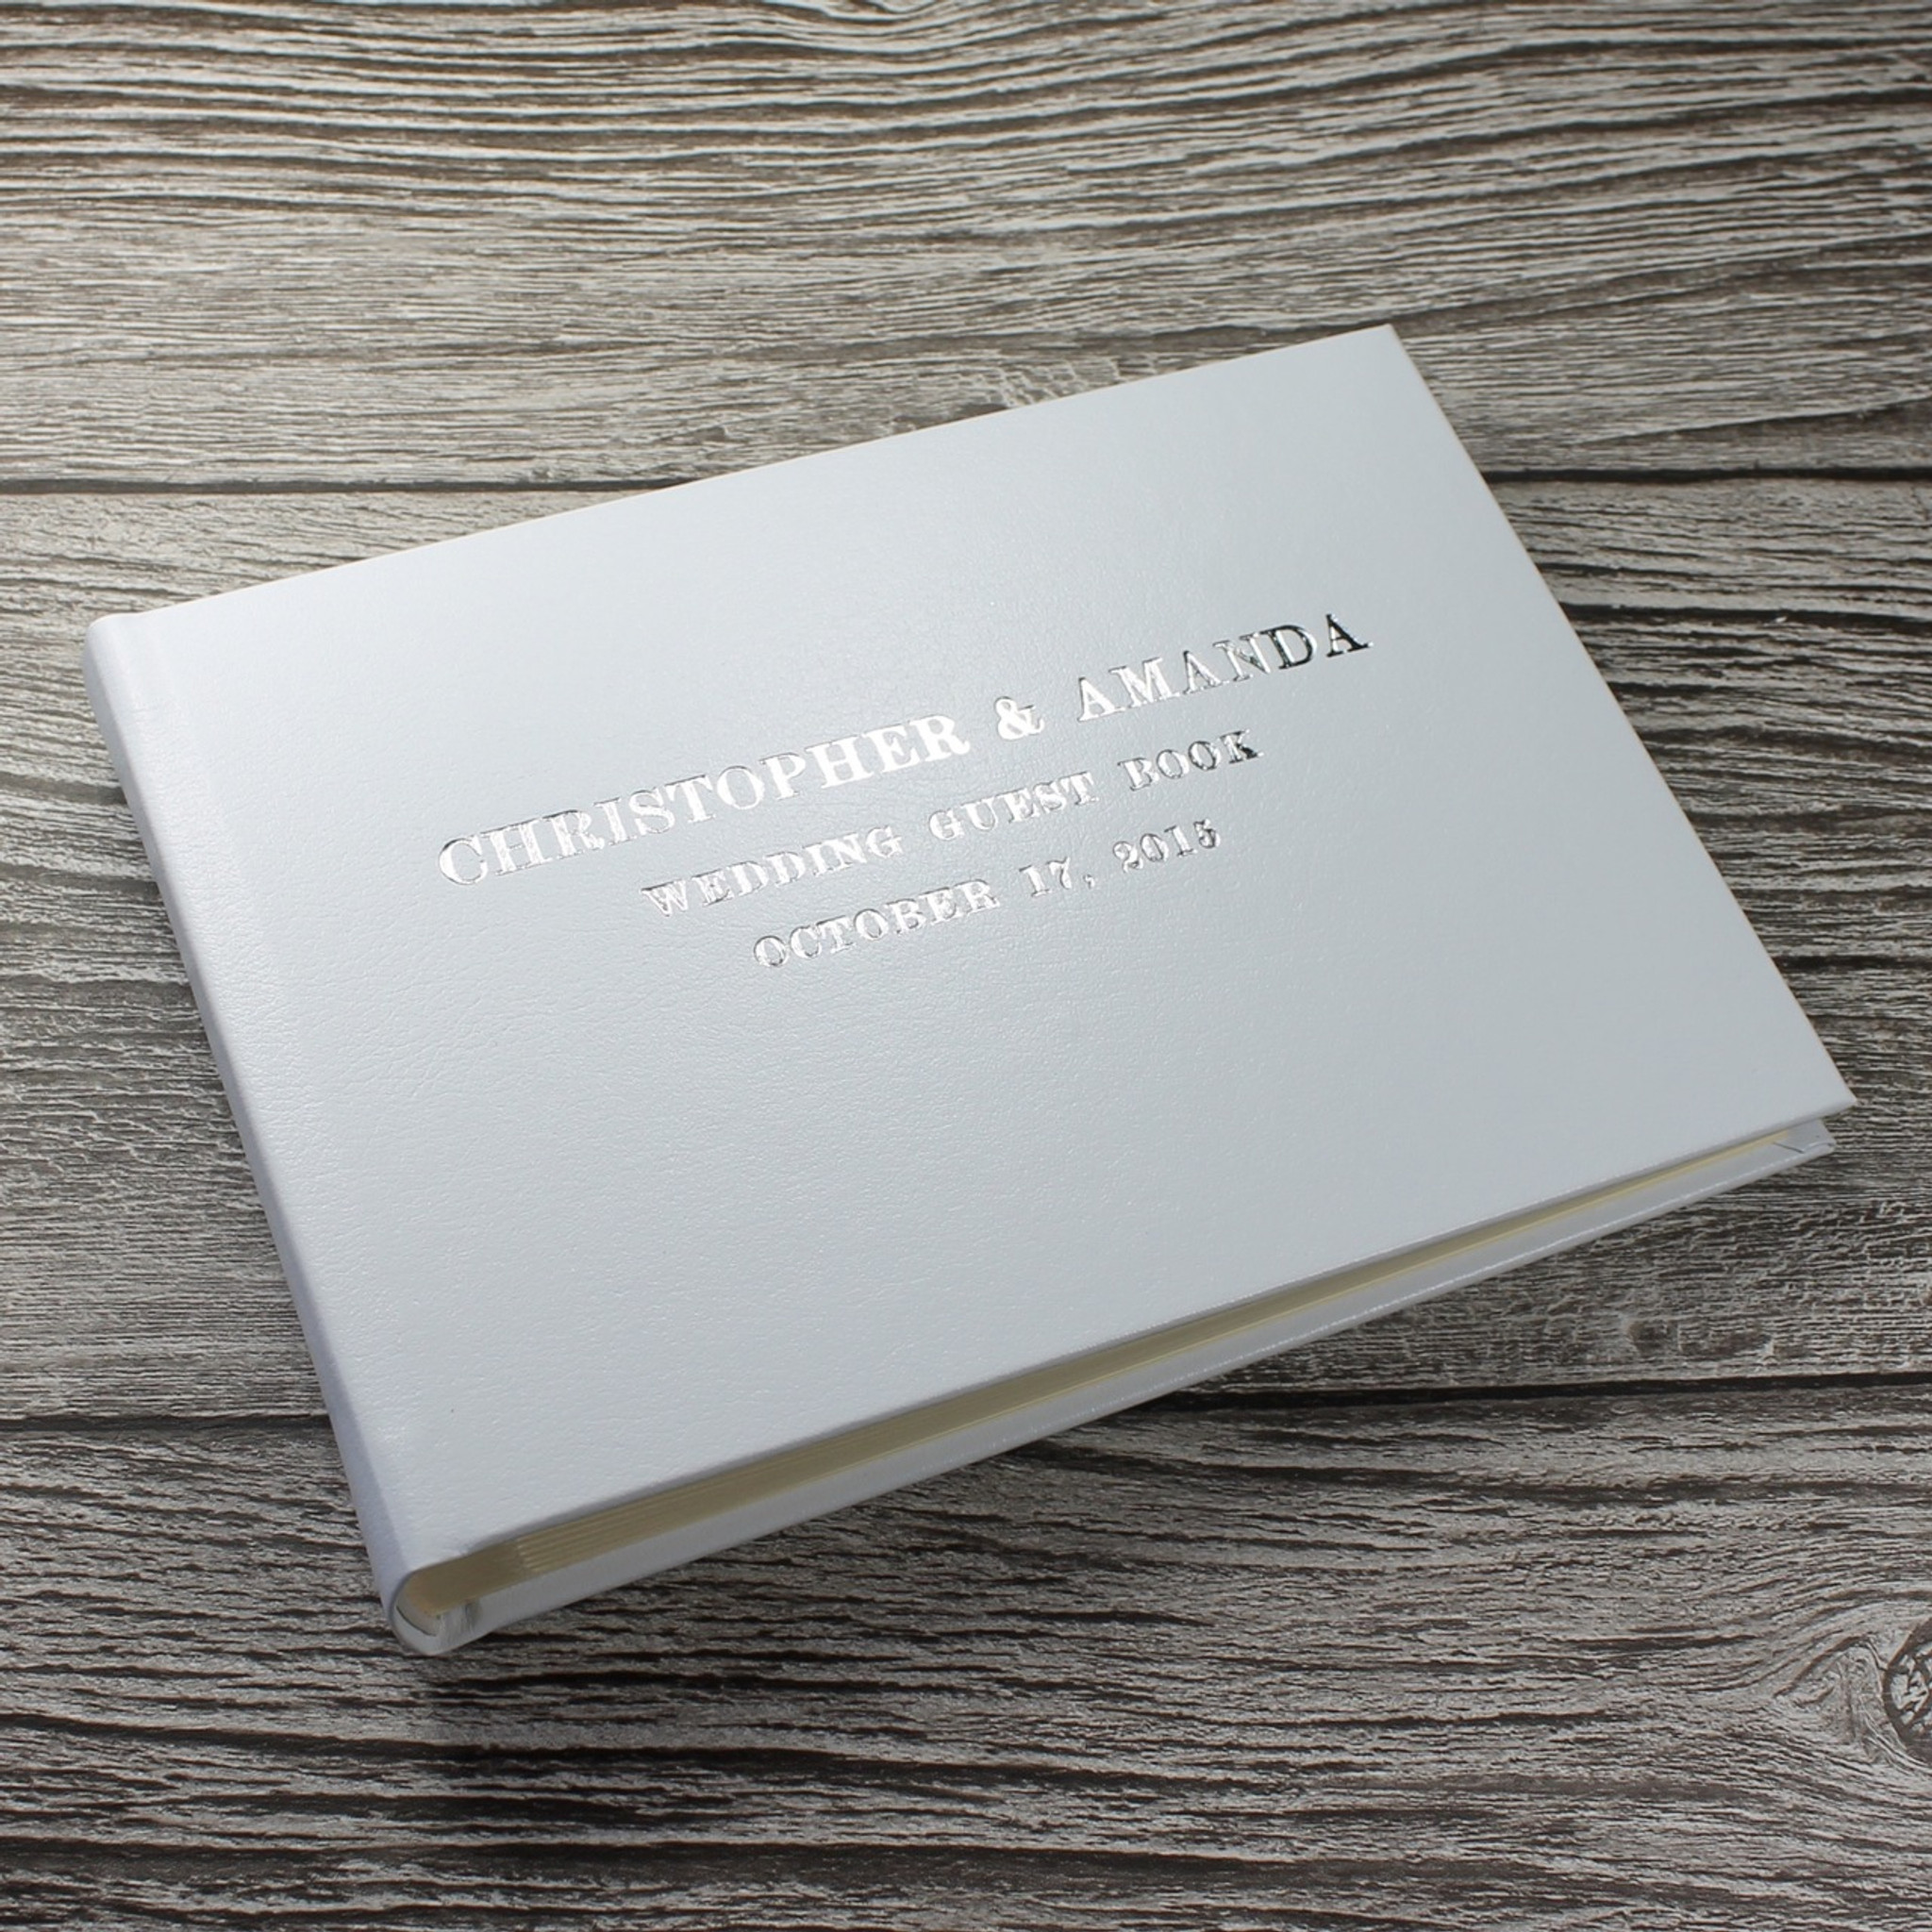 White Leather Photo Booth Guest Book Bespoke Album Company